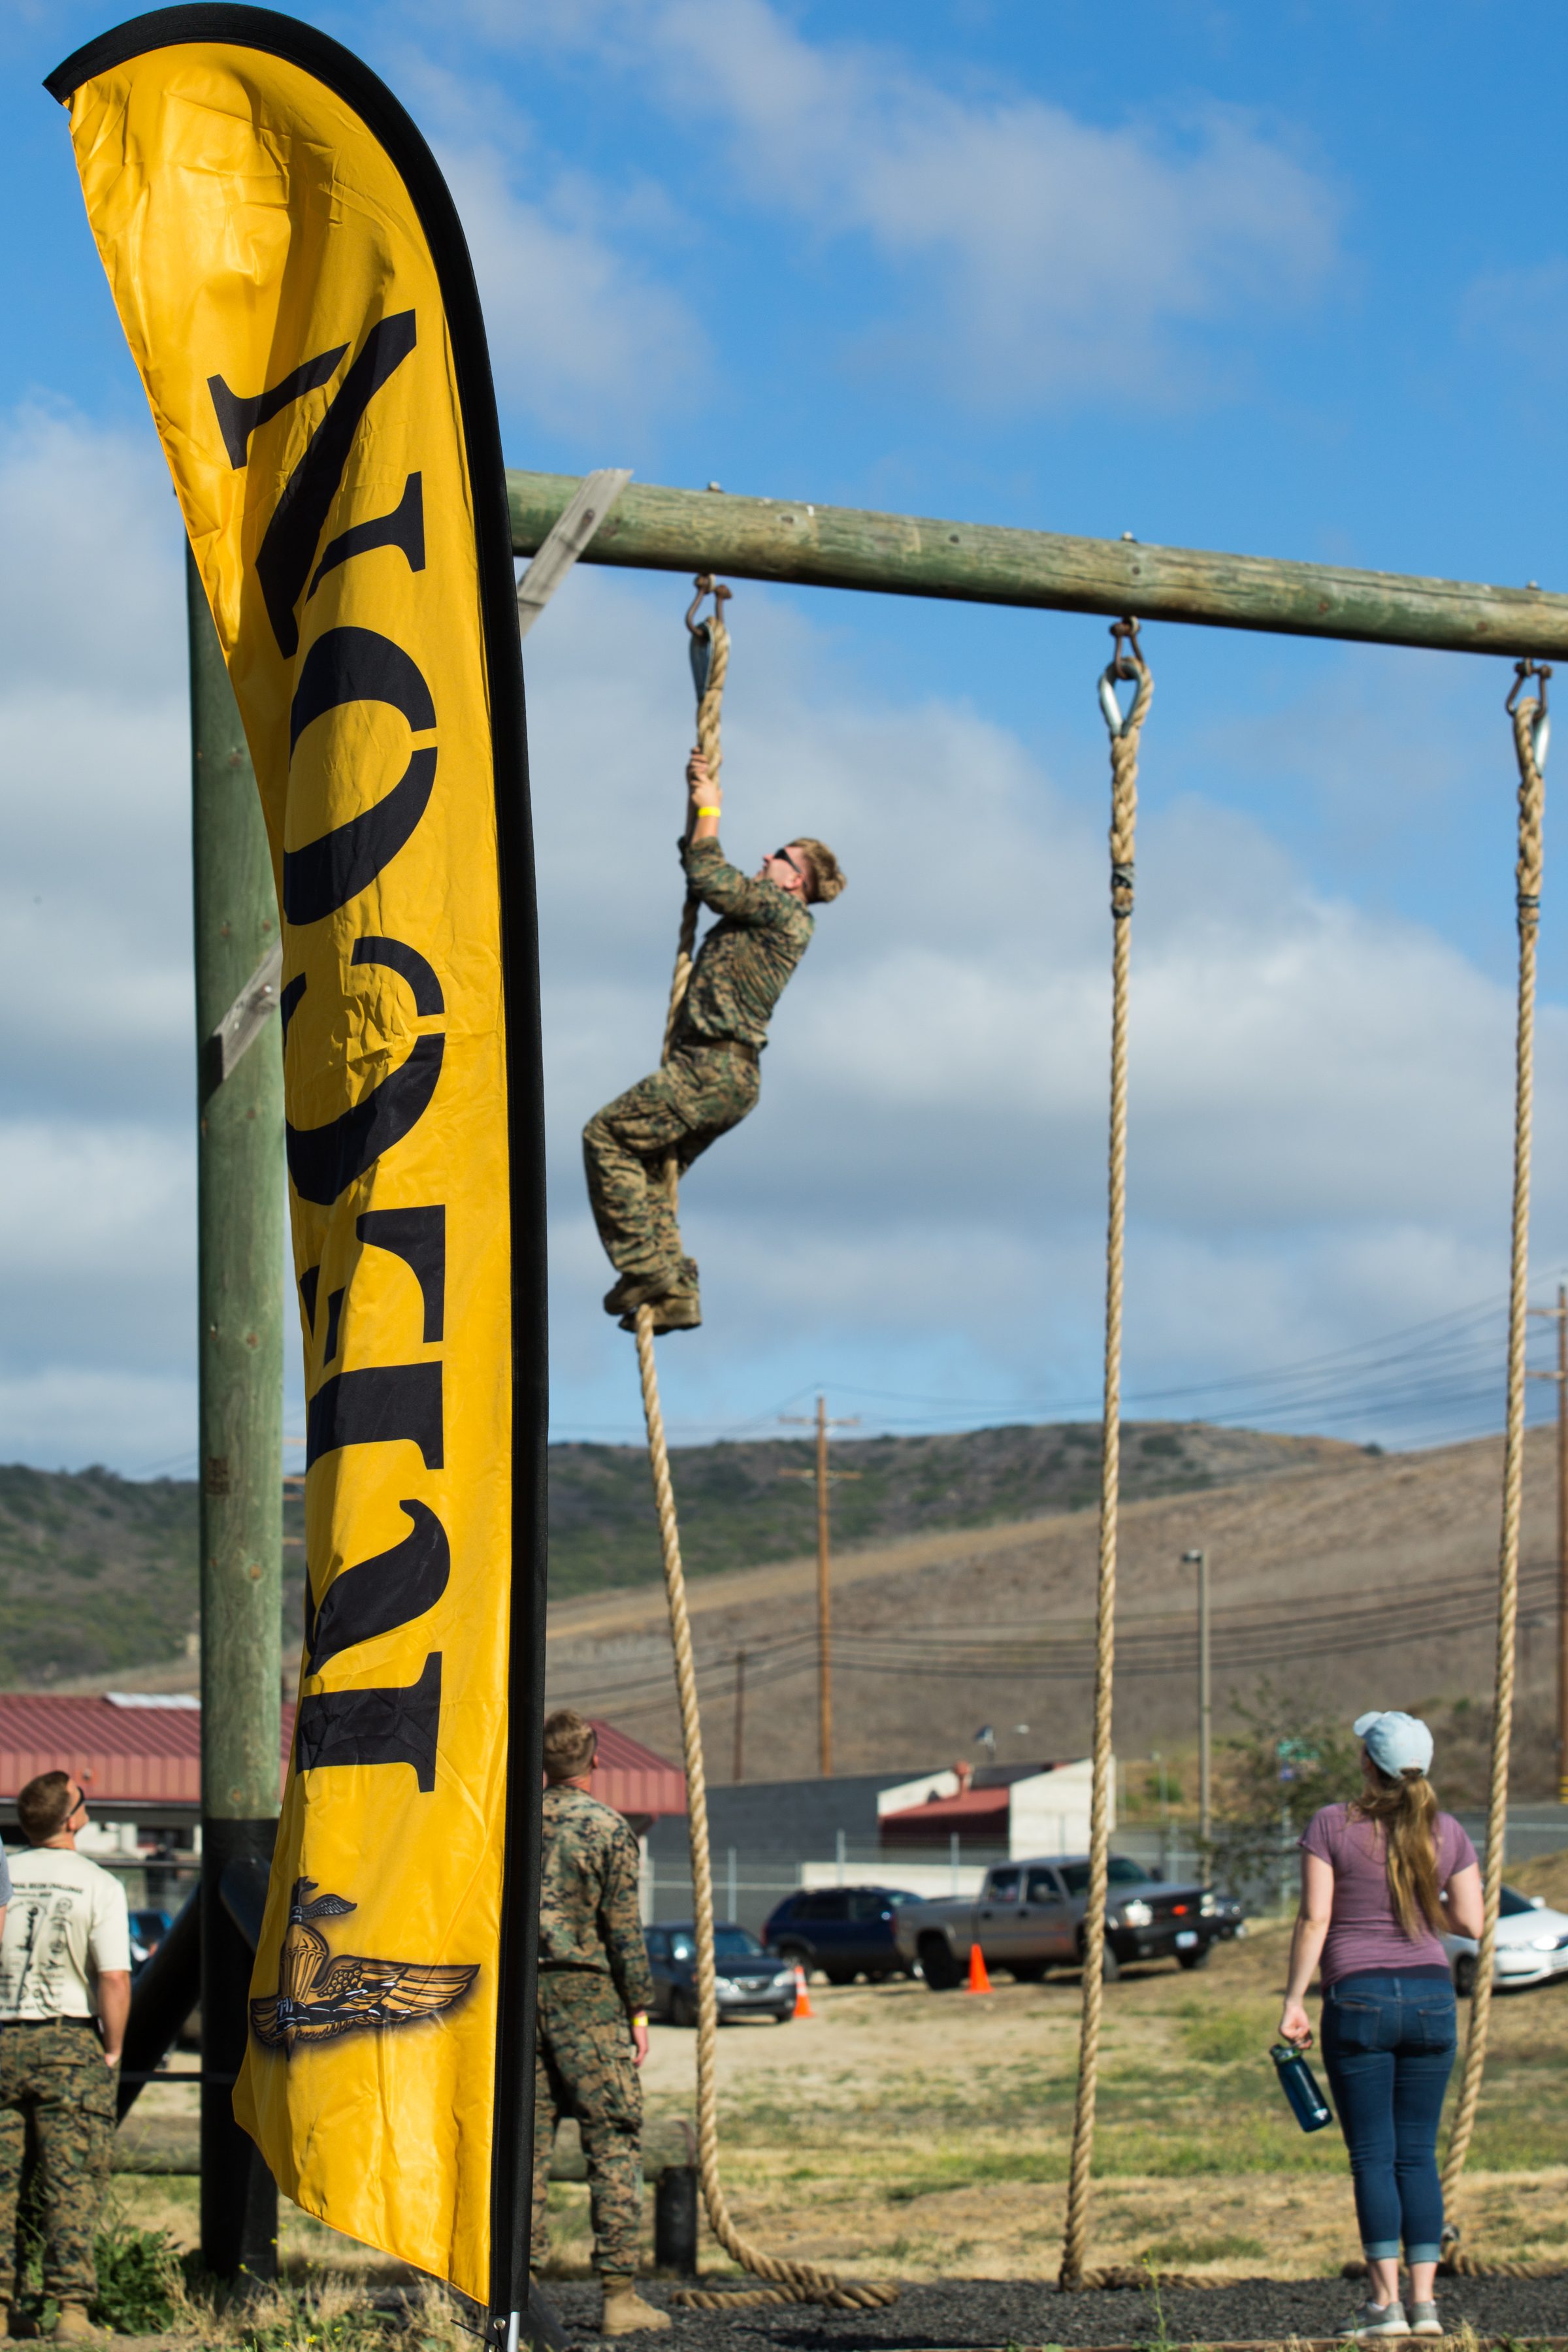 Recon Marines tackle the obstacle course of the Recon Challenge in memory of their fallen brothers Thursday morning at Camp Pendleton.